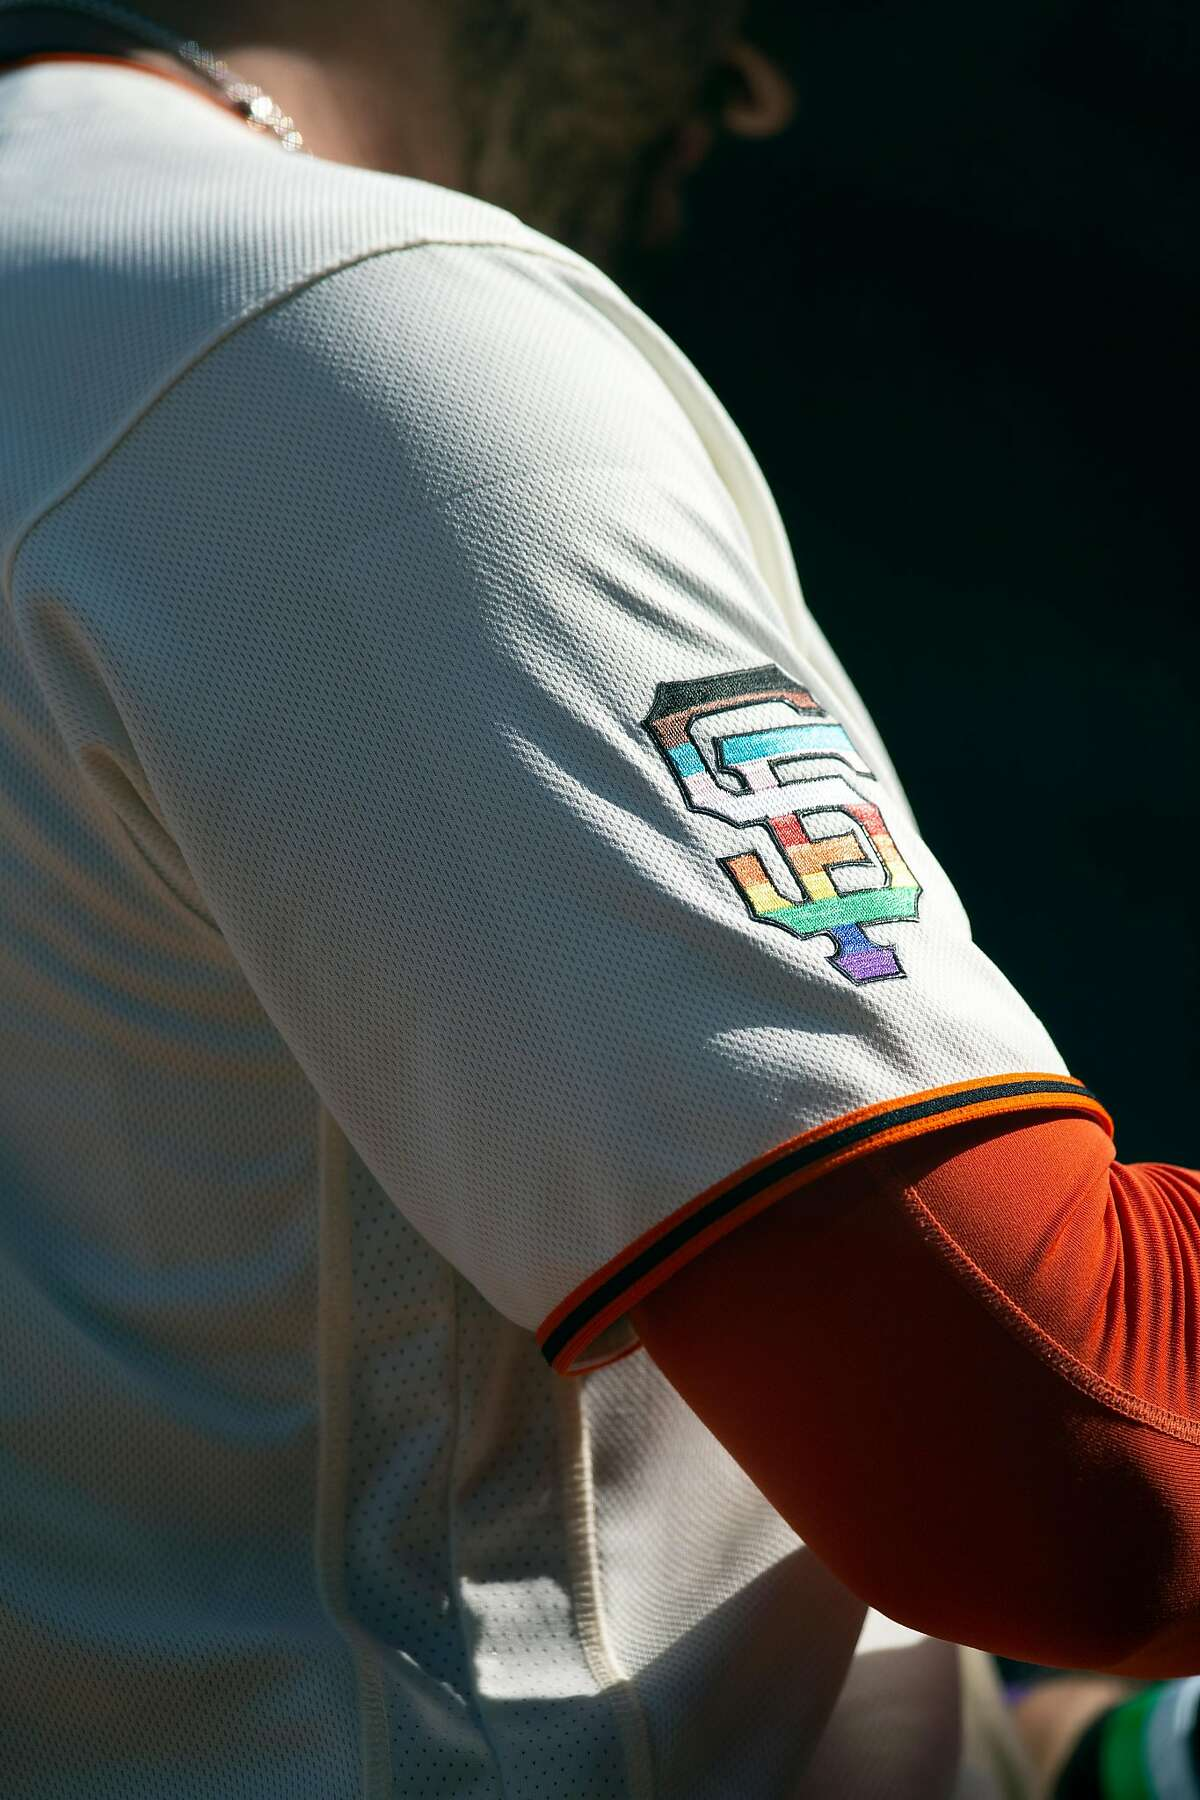 San Francisco Giants sport special rainbow insignias on their uniforms and caps to celebrate Pride month during a baseball game against the Chicago Cubs on Saturday, June 5, 2021 in San Francisco, Calif.